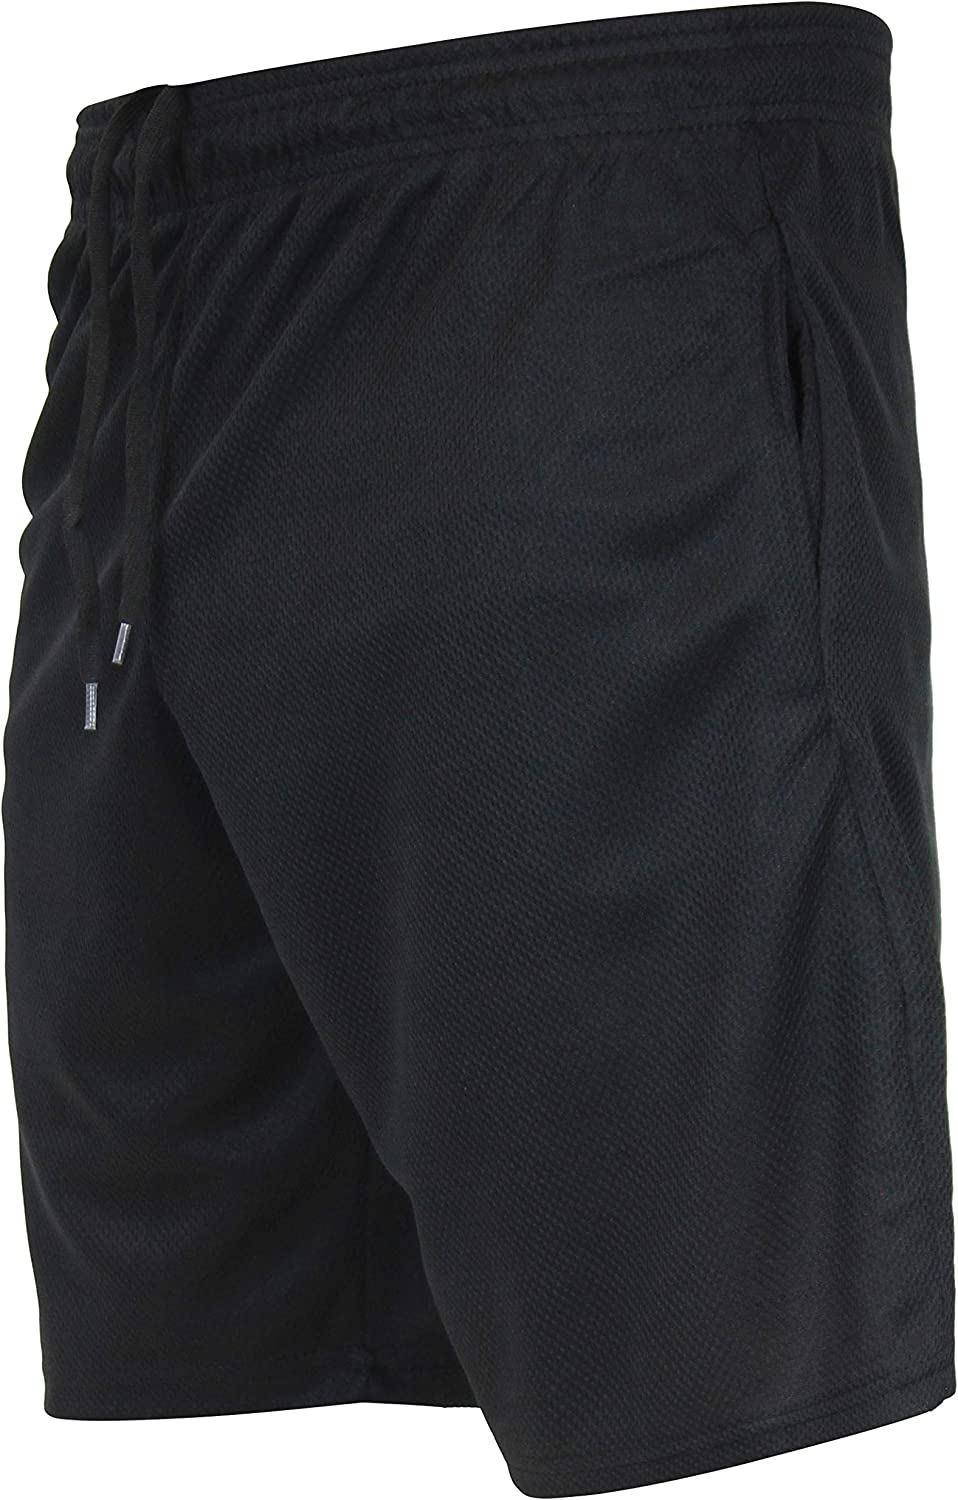 Real Essentials Boys 5-Pack Mesh Active Athletic Performance Basketball Shorts with Pockets